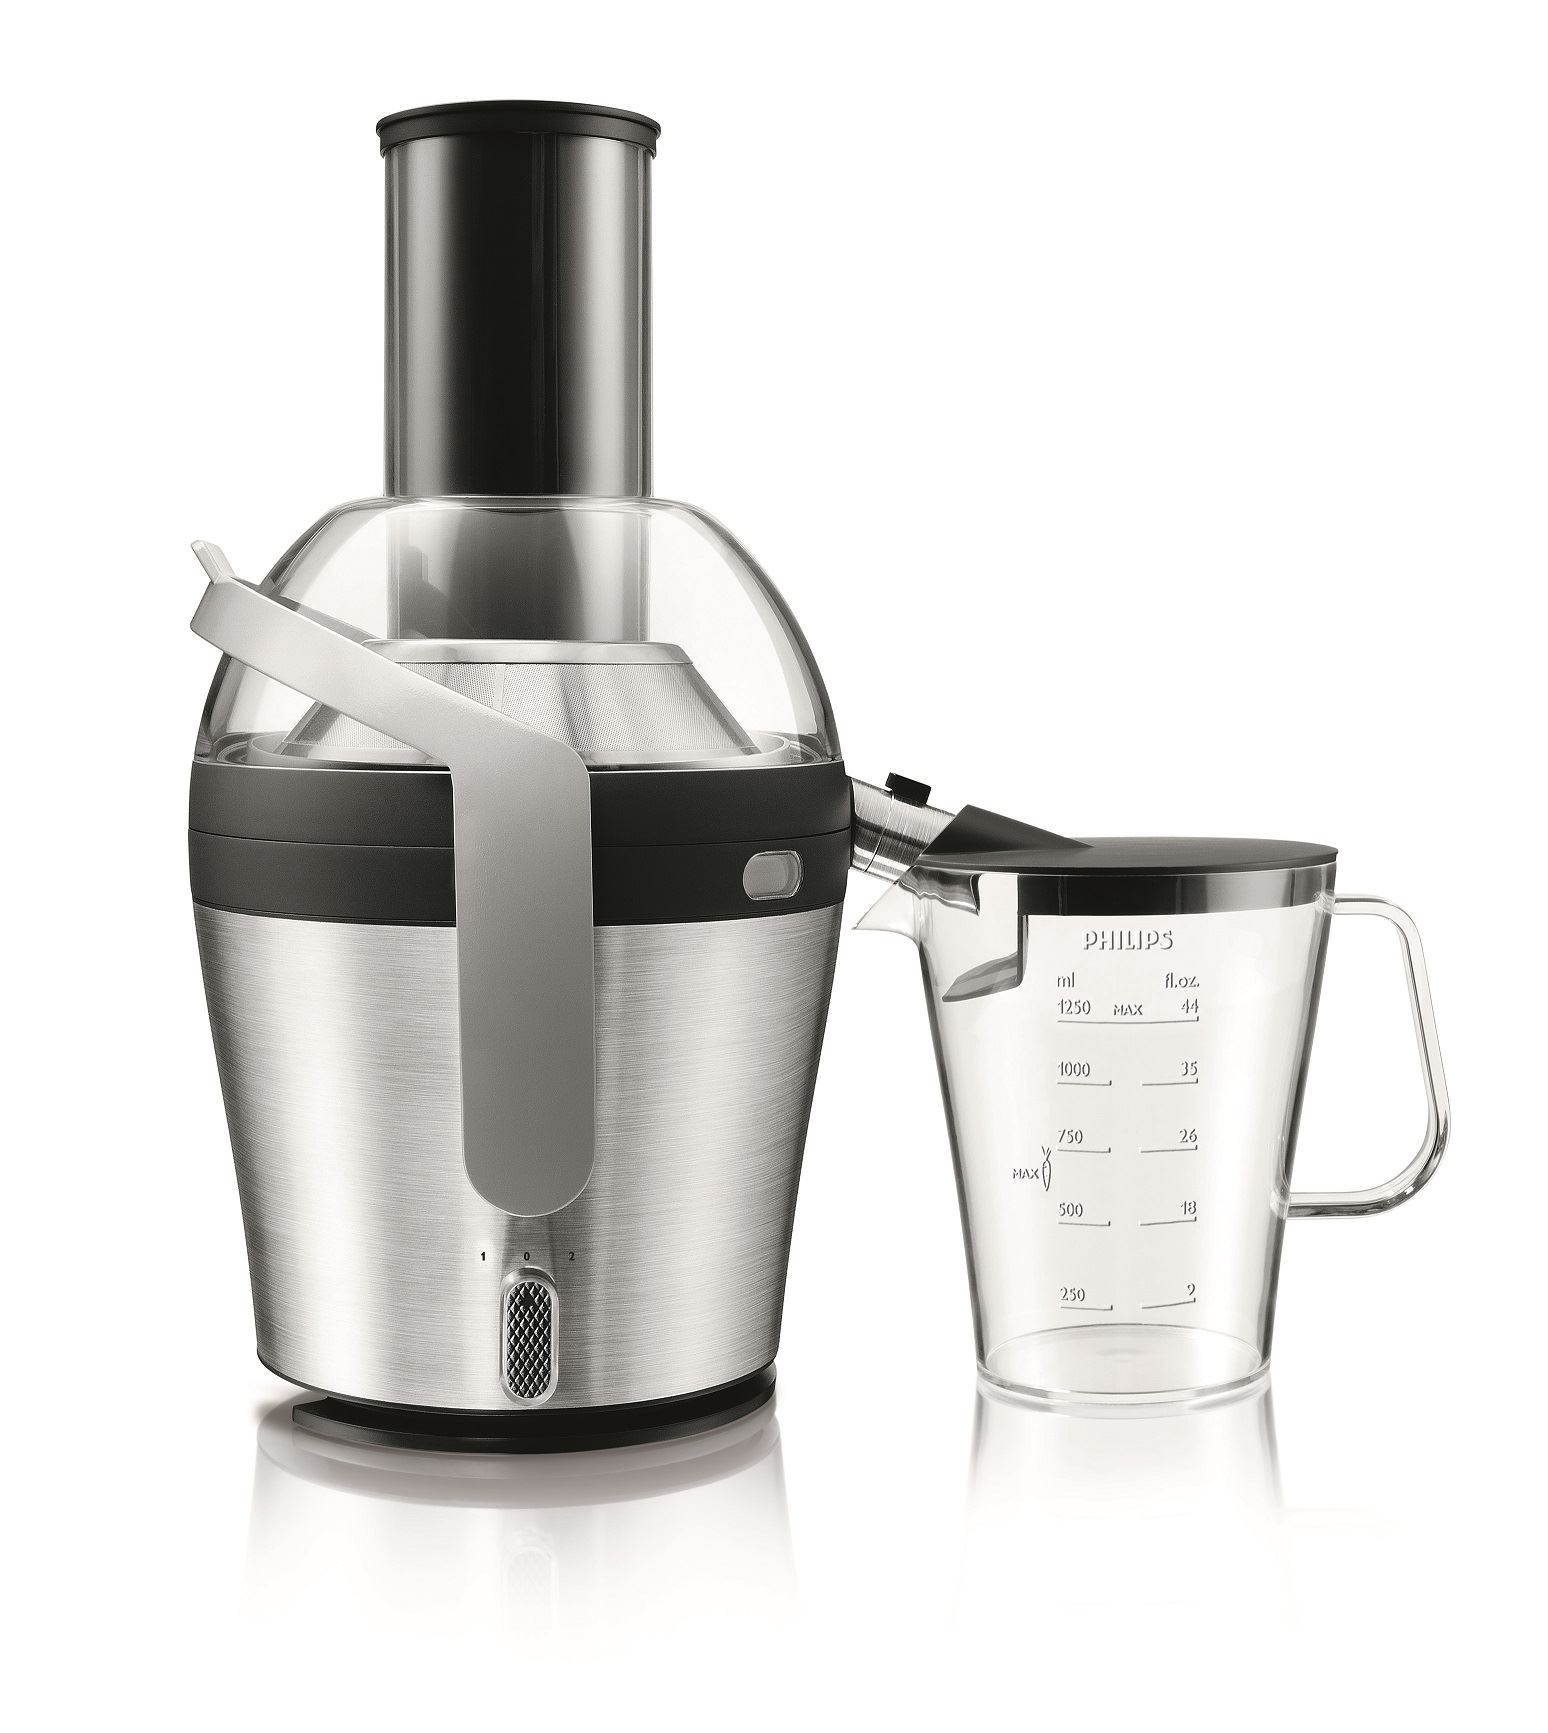 Philips Avance Collection Juicer in Brushed Stainless Steel 800W HR1871/00 | eBay